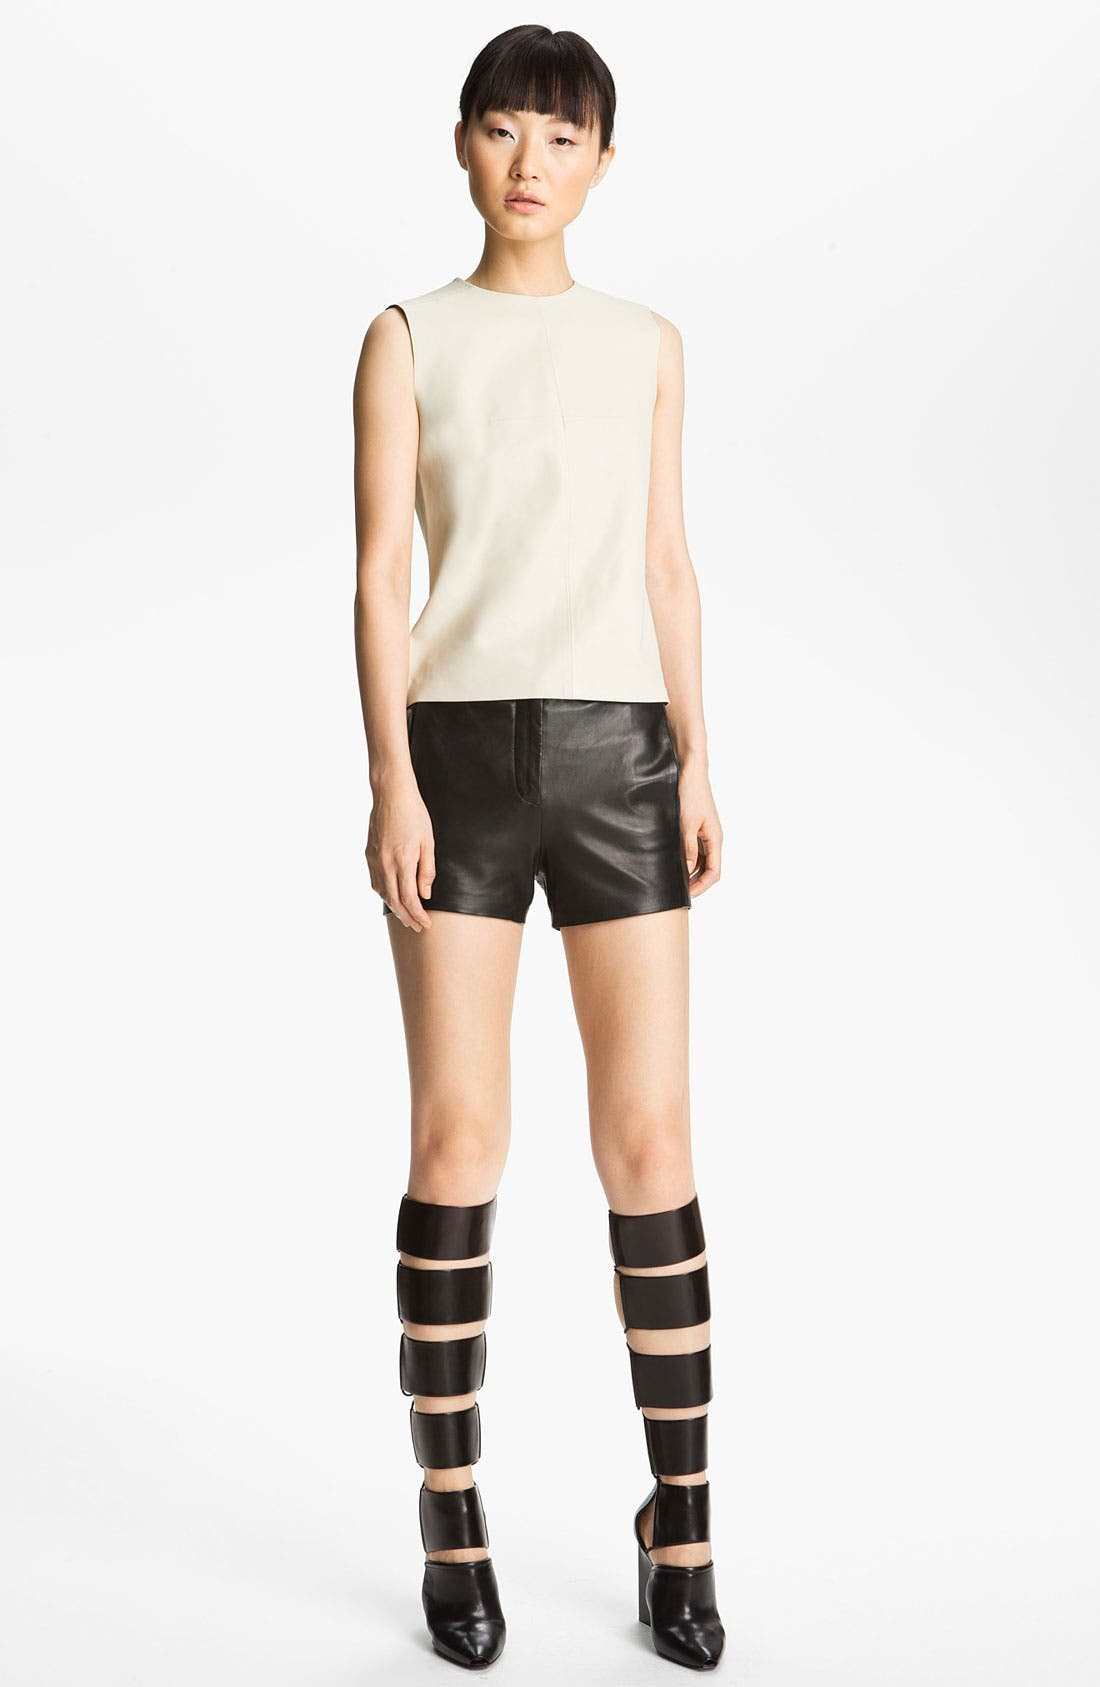 Alternate Image 1 Selected - T by Alexander Wang Leather Shell & Shorts